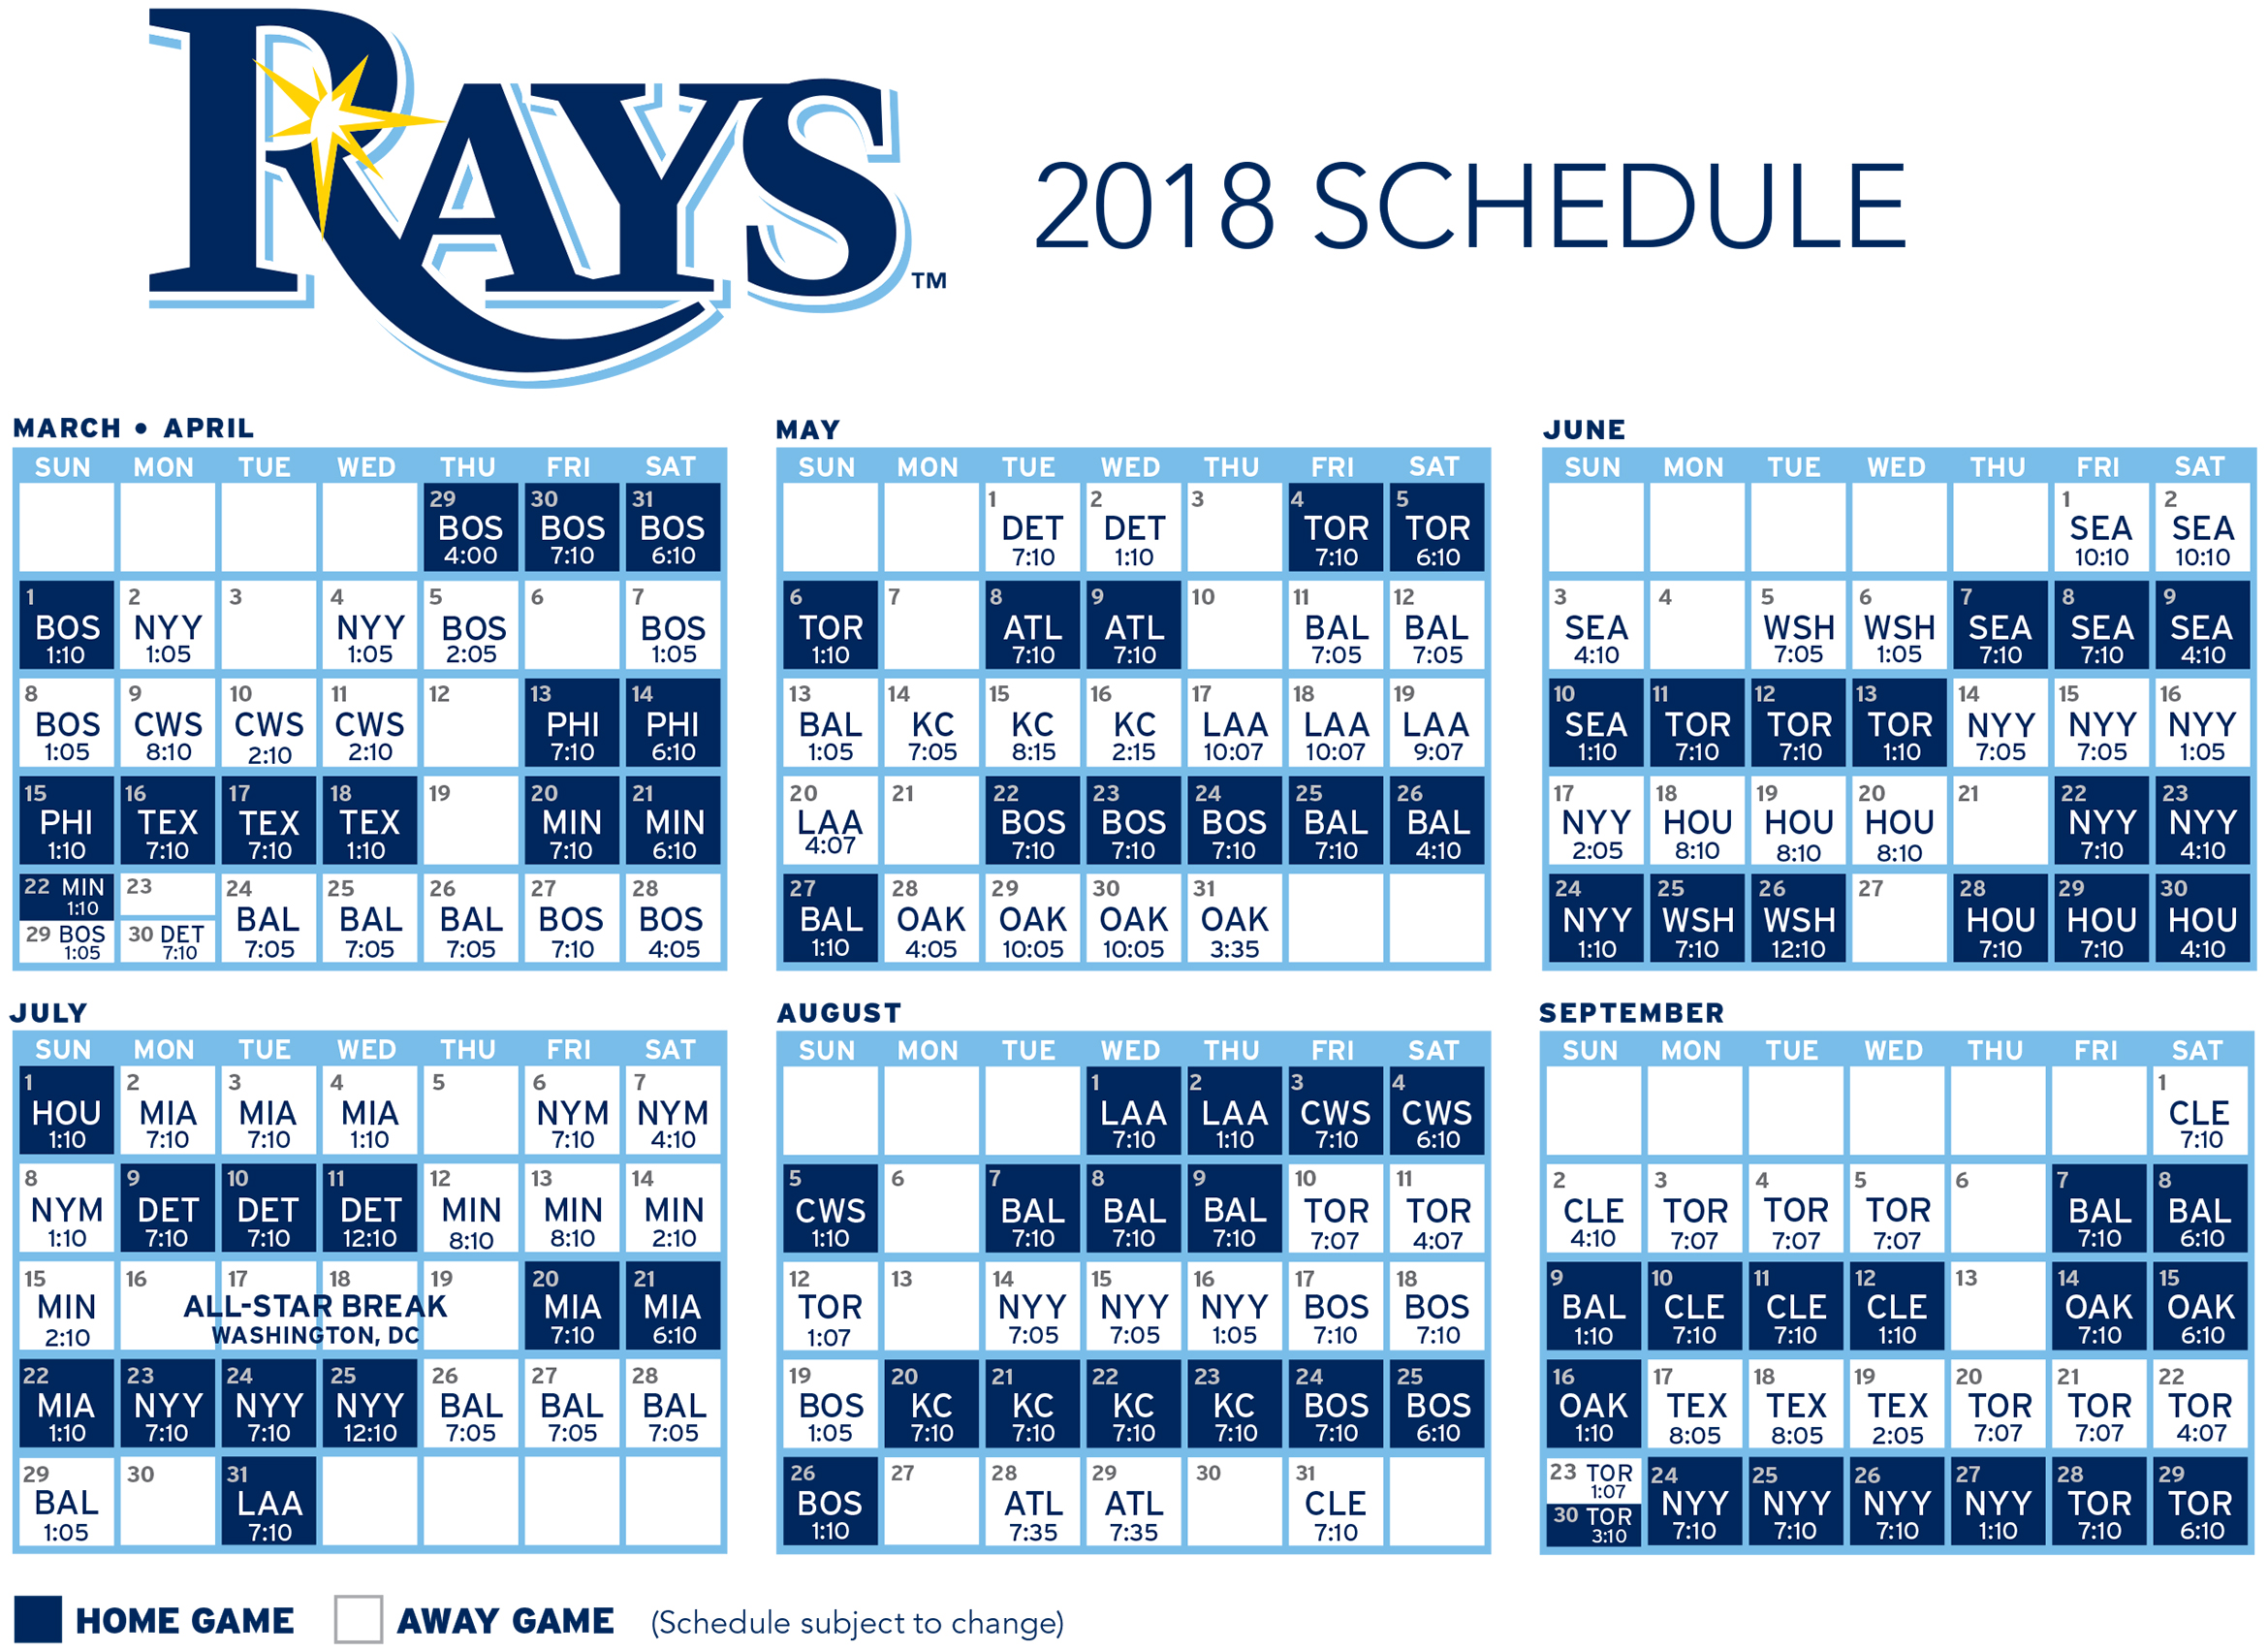 Download the 2018 Tampa Bay Rays Schedule